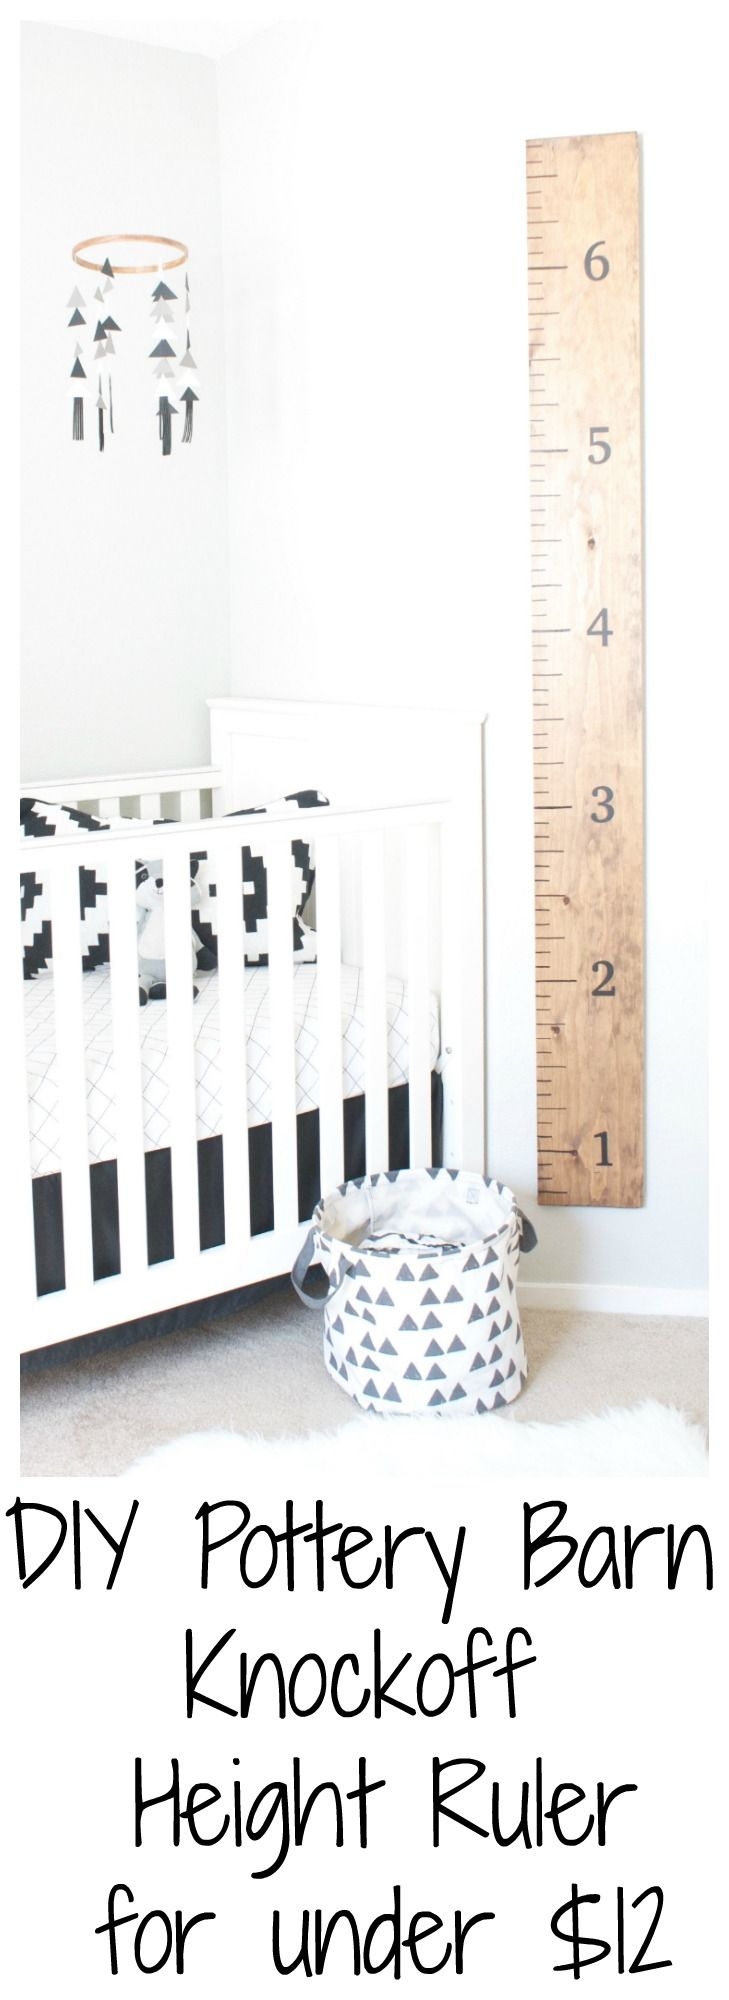 This DIY Pottery Barn Knockoff Height Ruler was so easy to make and I did it for less than $12! Even beginner DIY'ers can do this project!